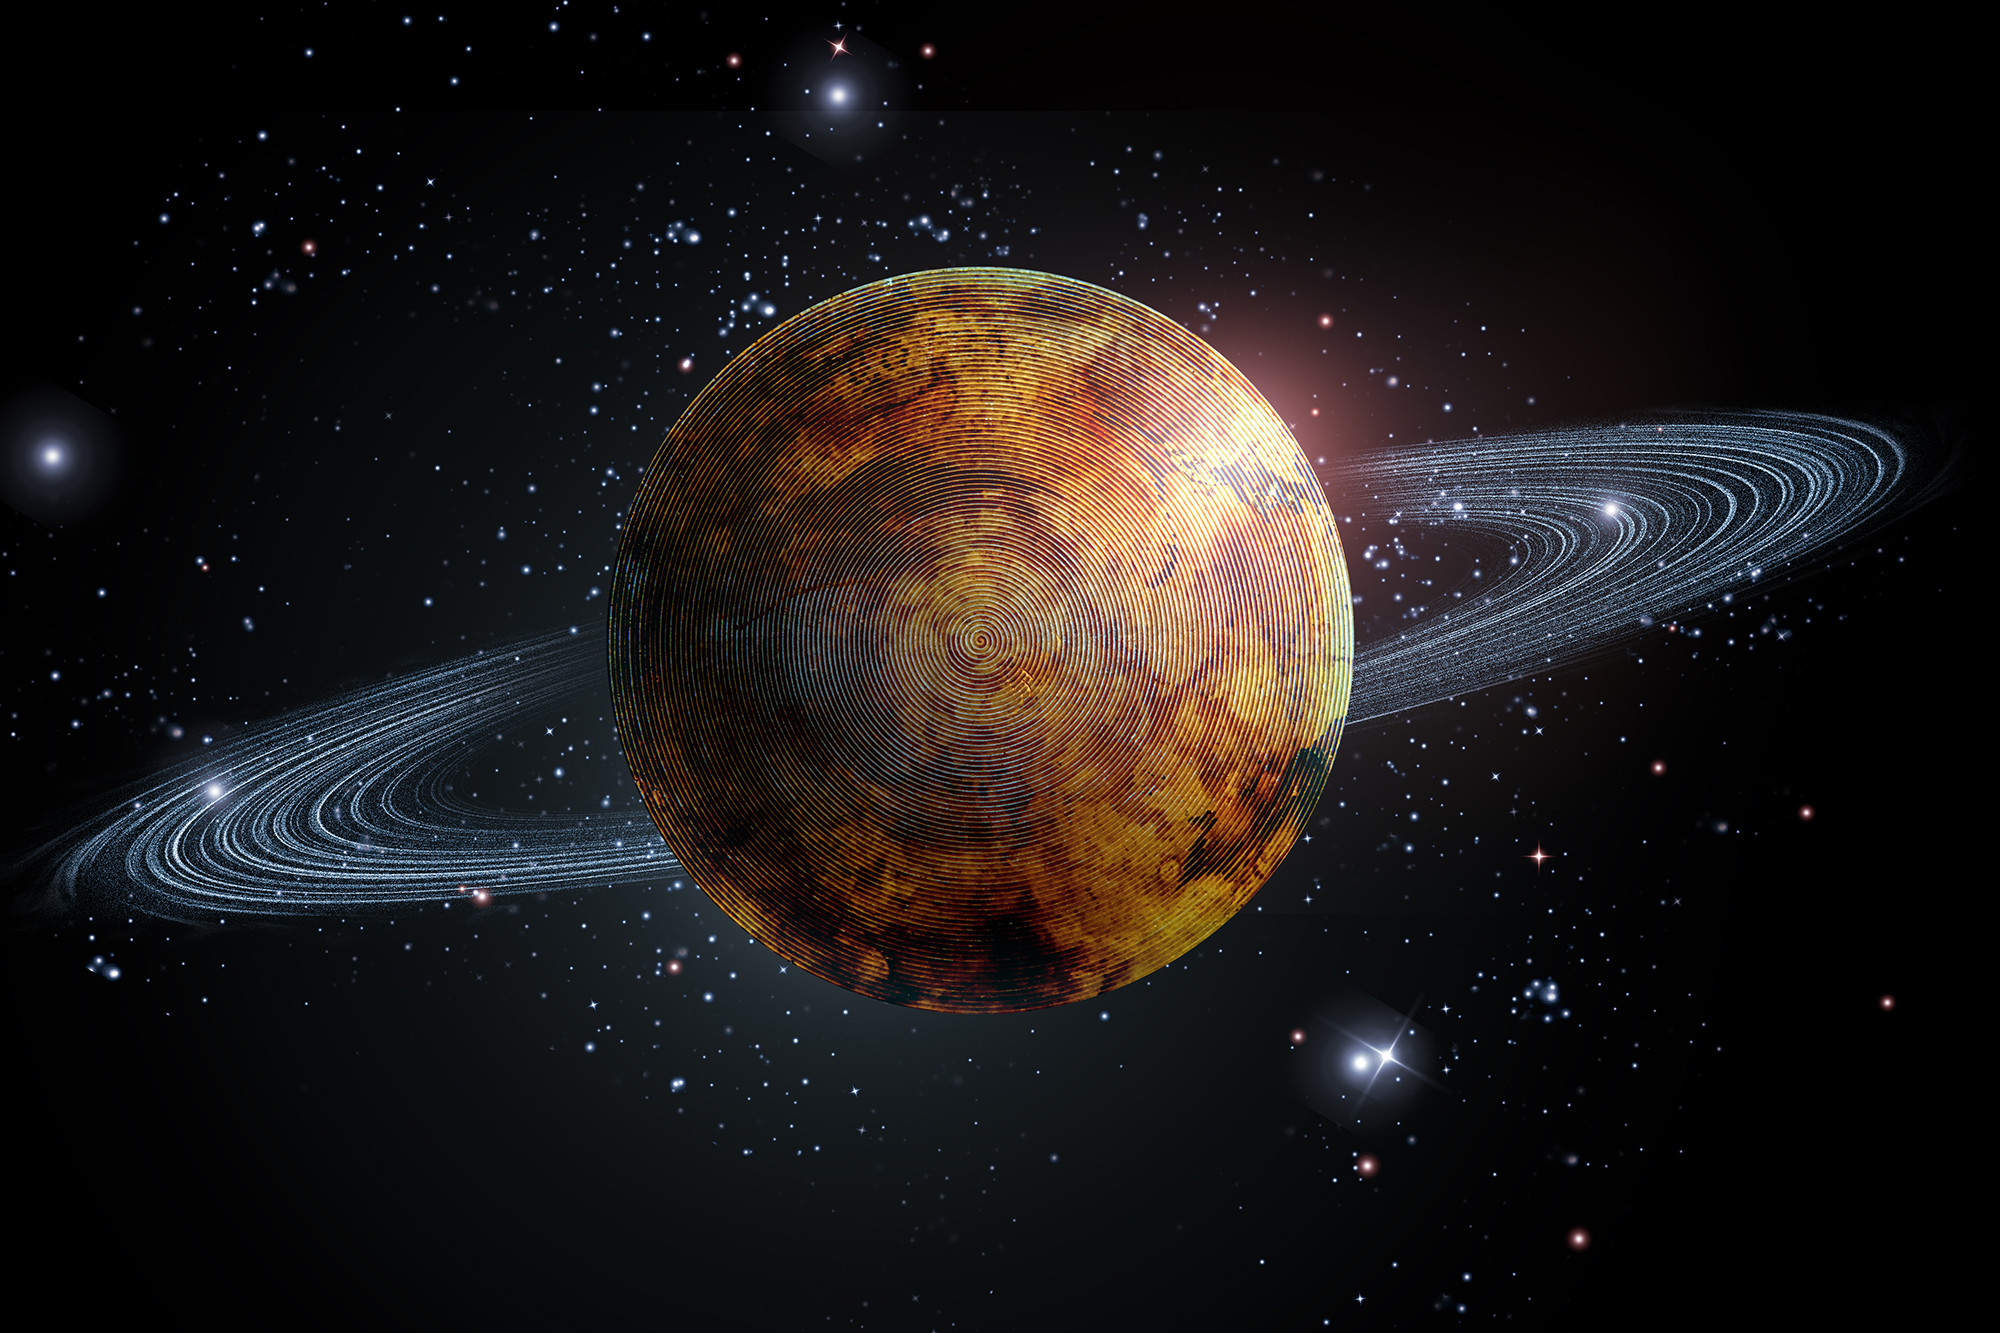 Saturn is the 6th planet from Sun and is a gas giant.